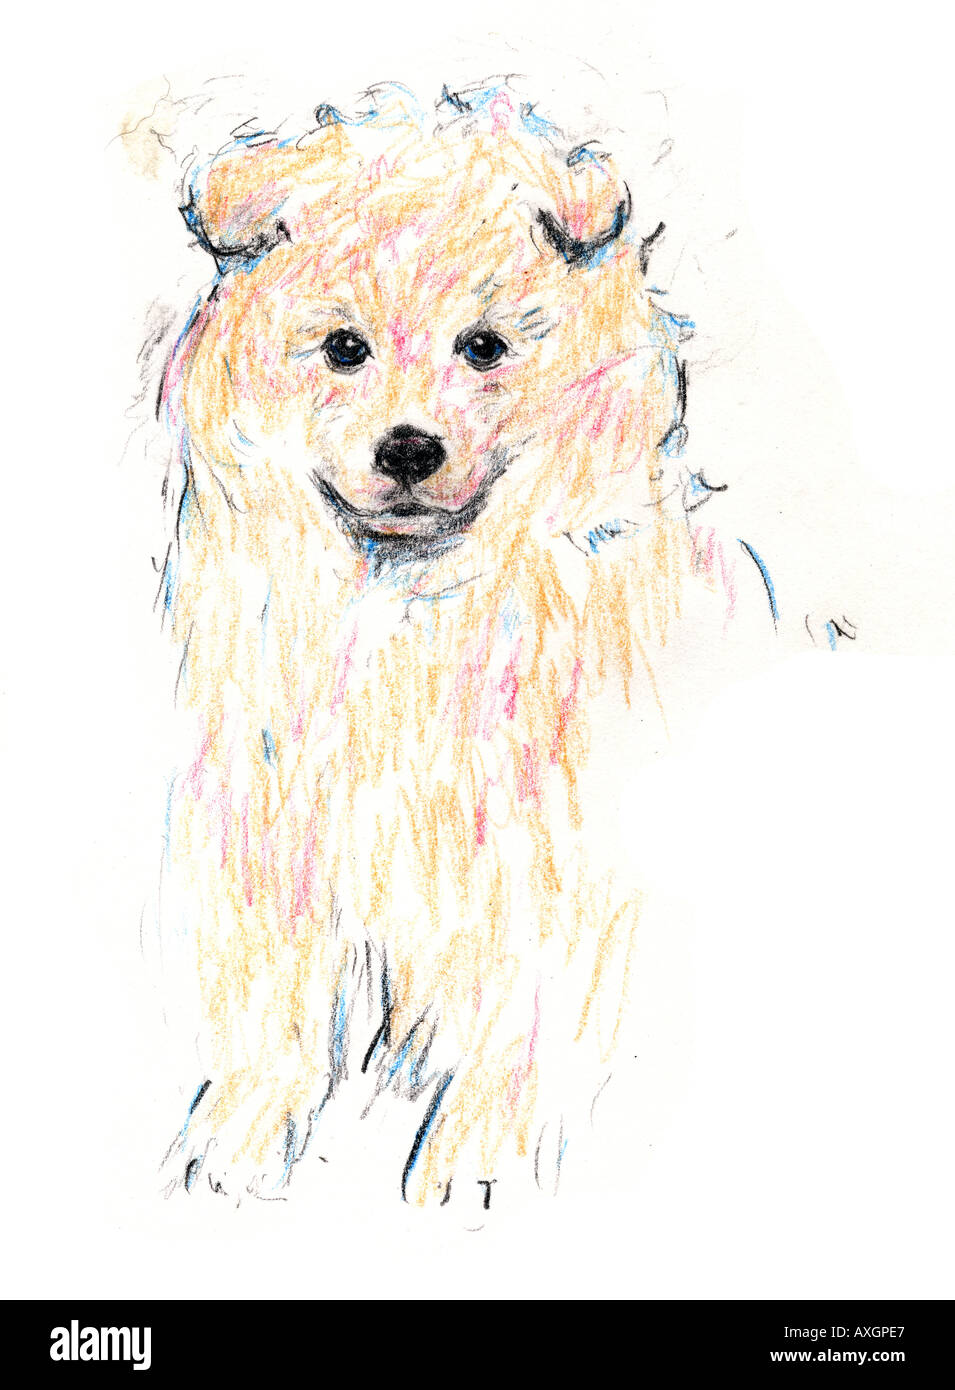 Pomeranian Puppy Stock Photo Alamy